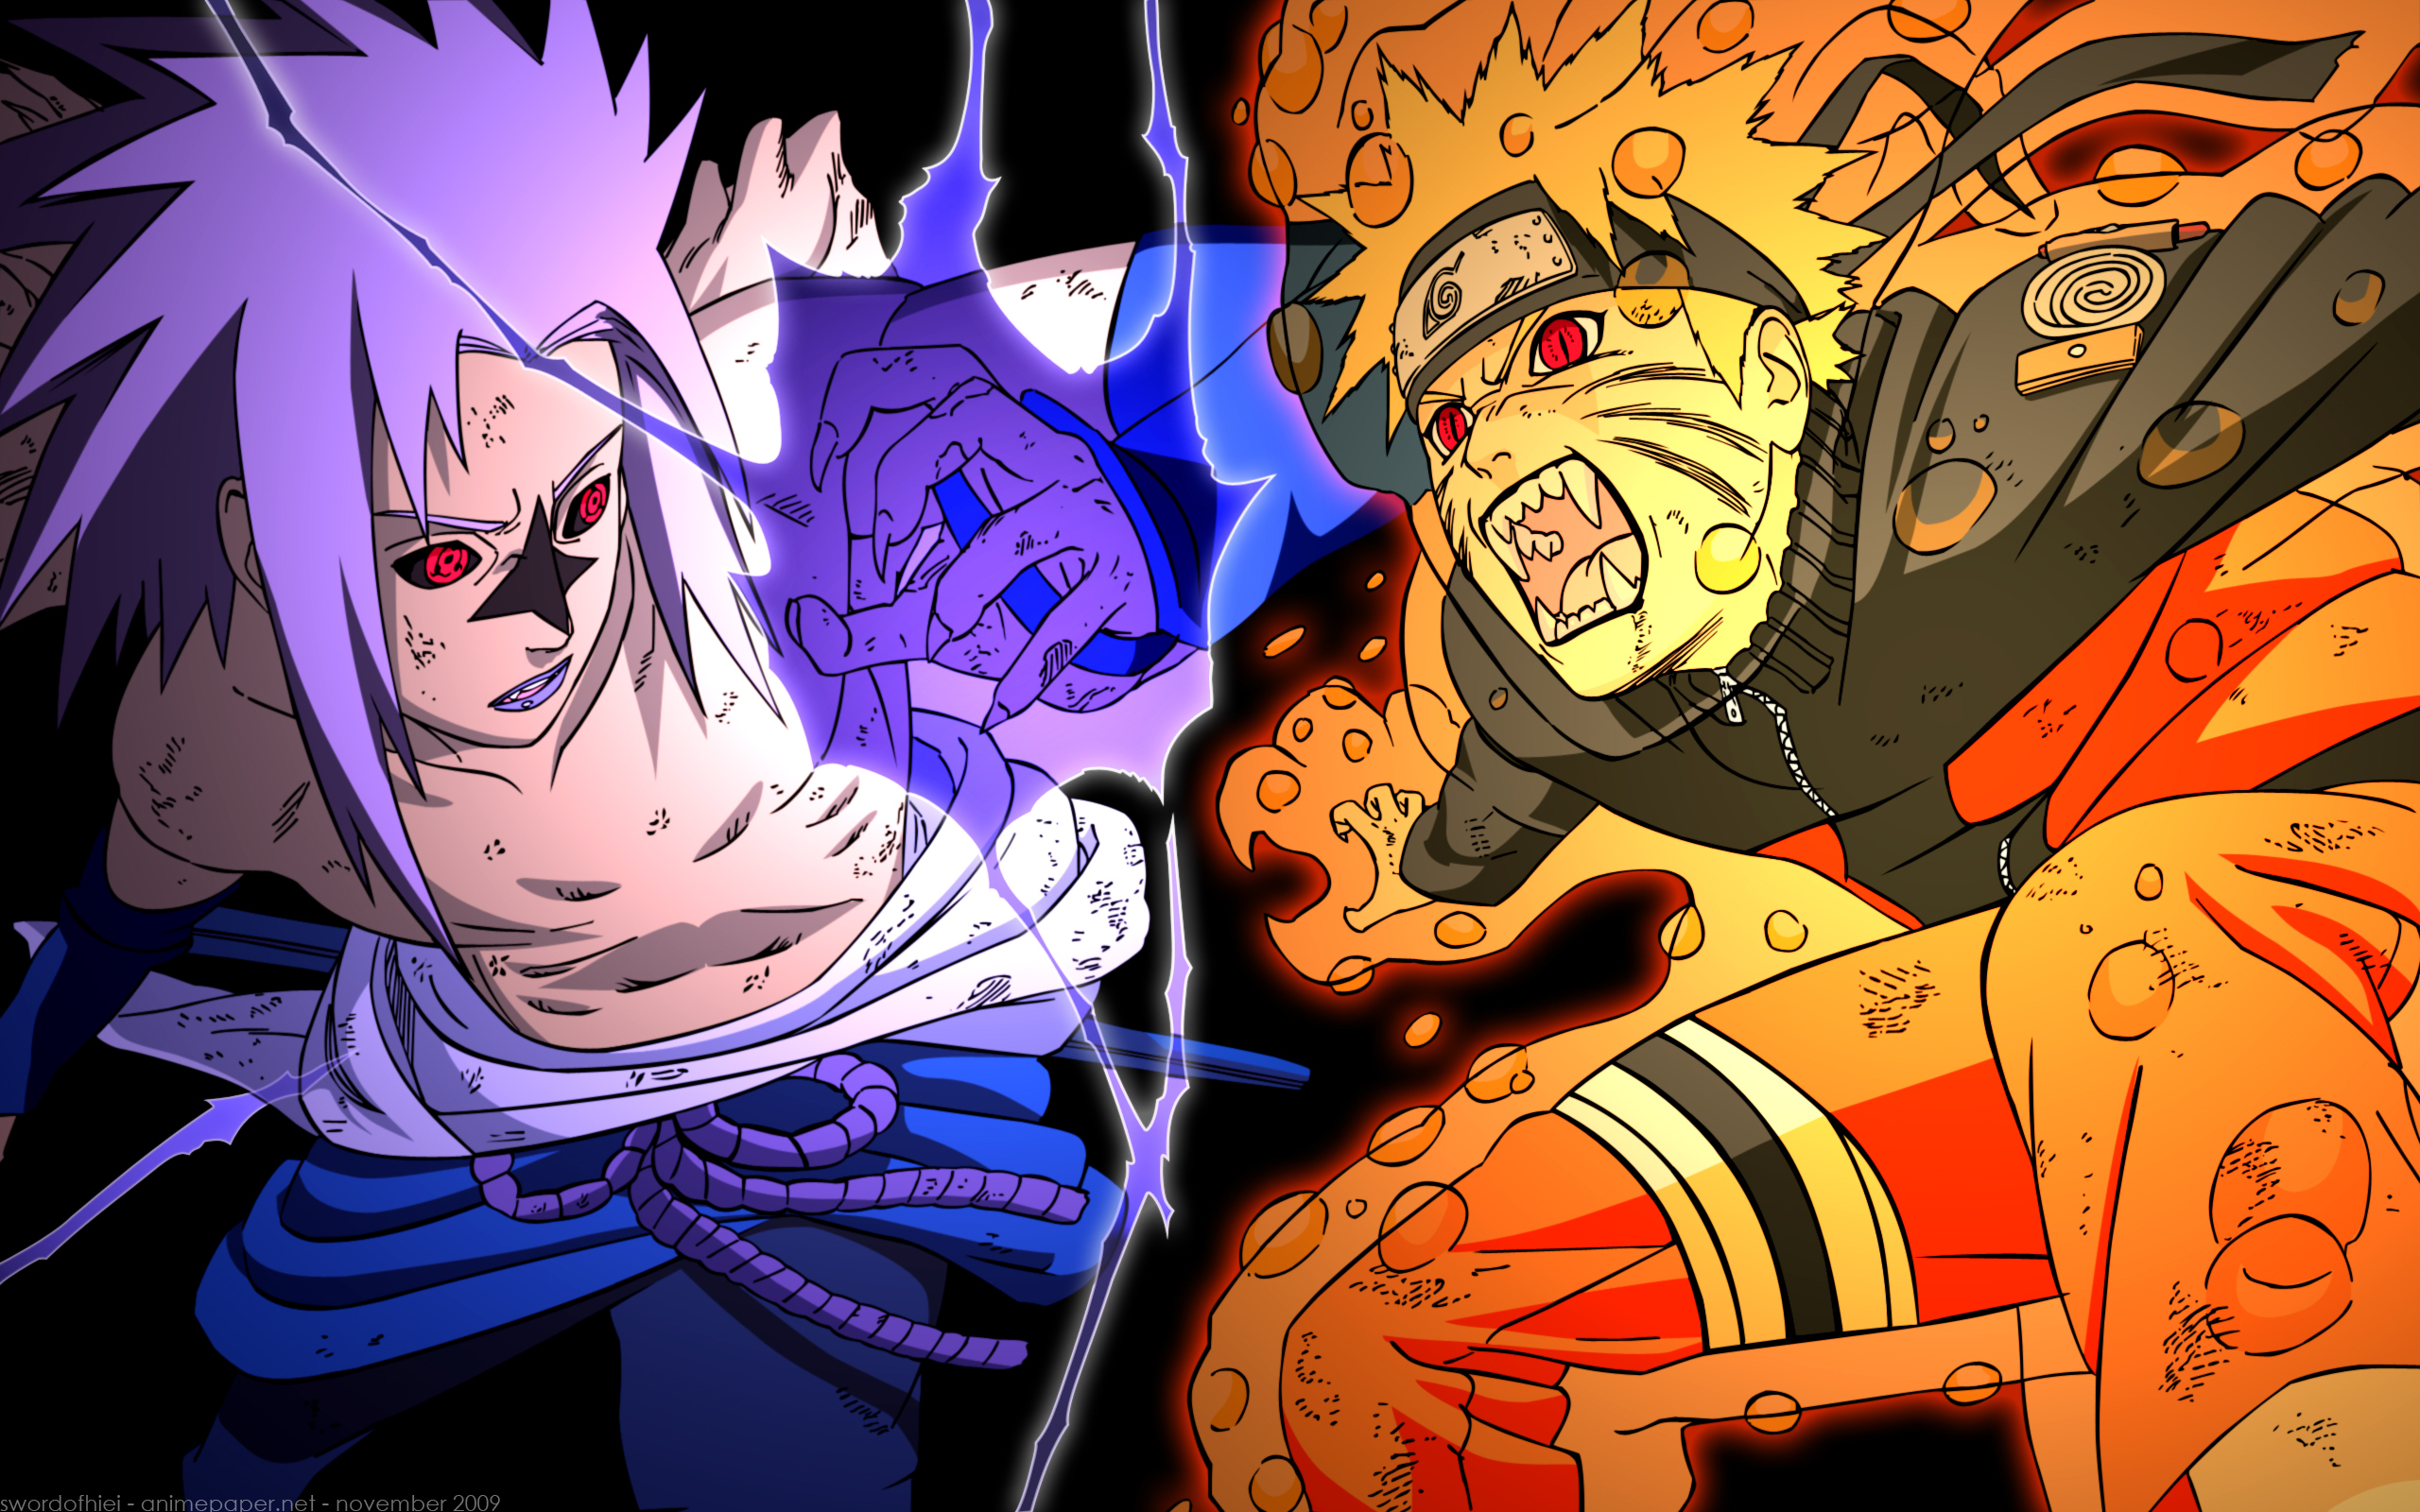 Naruto Res: 2560x1600 / Size:2476kb. Views: 18568